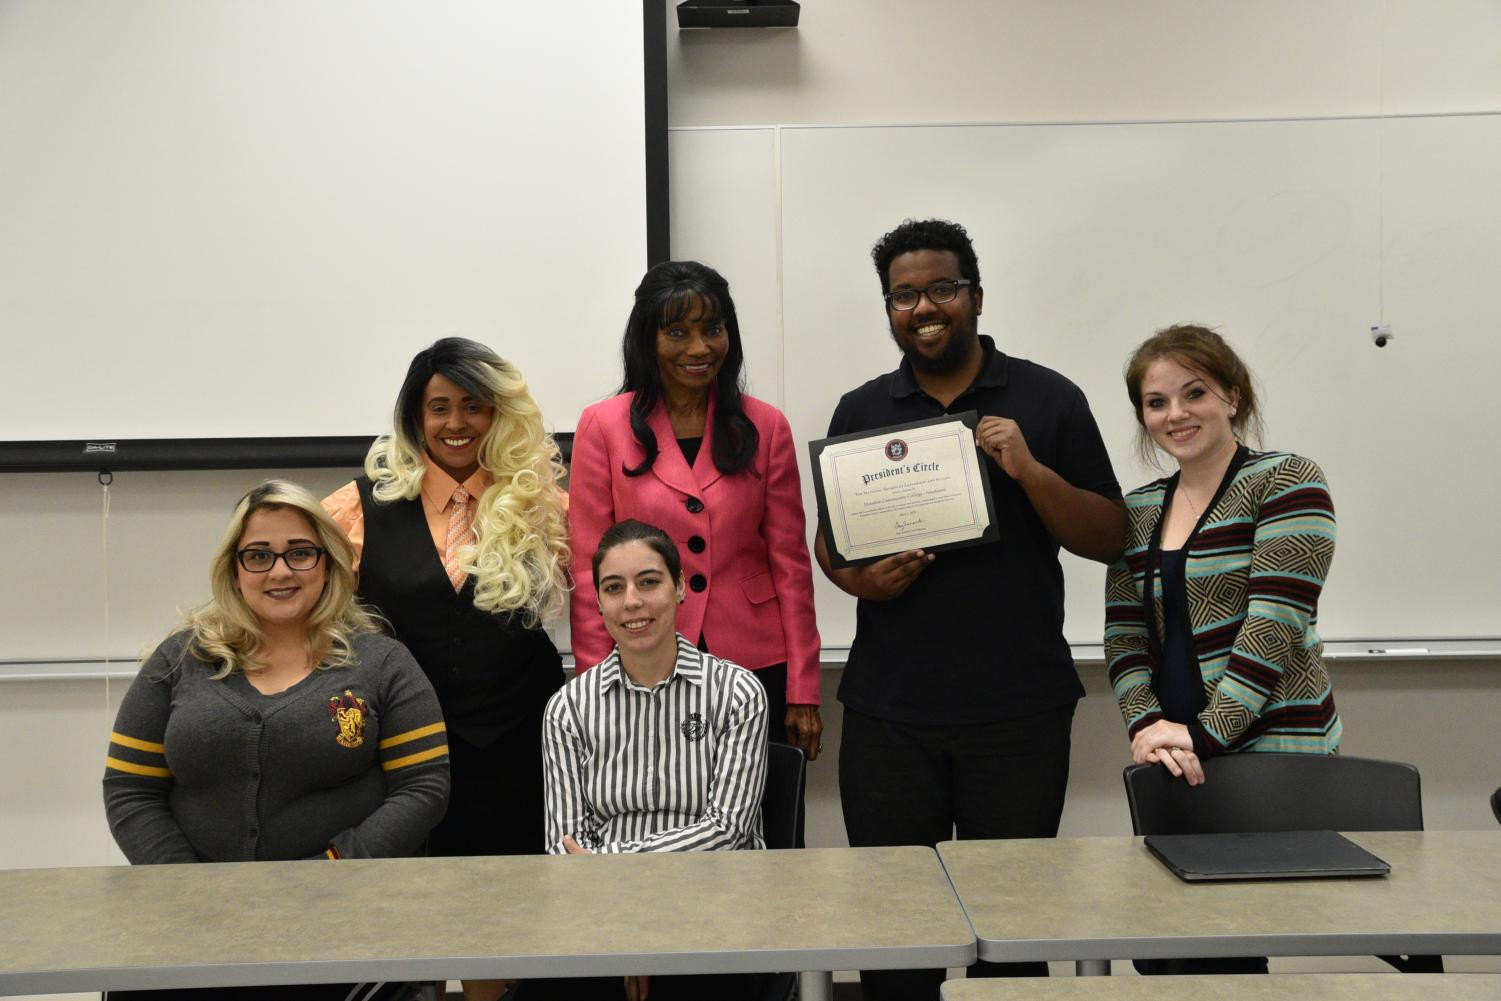 NSLS Southeast Chapter Executive Board (from left, standing: Advisers Tina Williams and Dr. Johnella Bradford, Chapter President Fathy Elsayem, Co-Vice President Kristen Chersky; from left, sitting: SNT Coordinator Martha Molina, and Vice President Filipa Ivo.